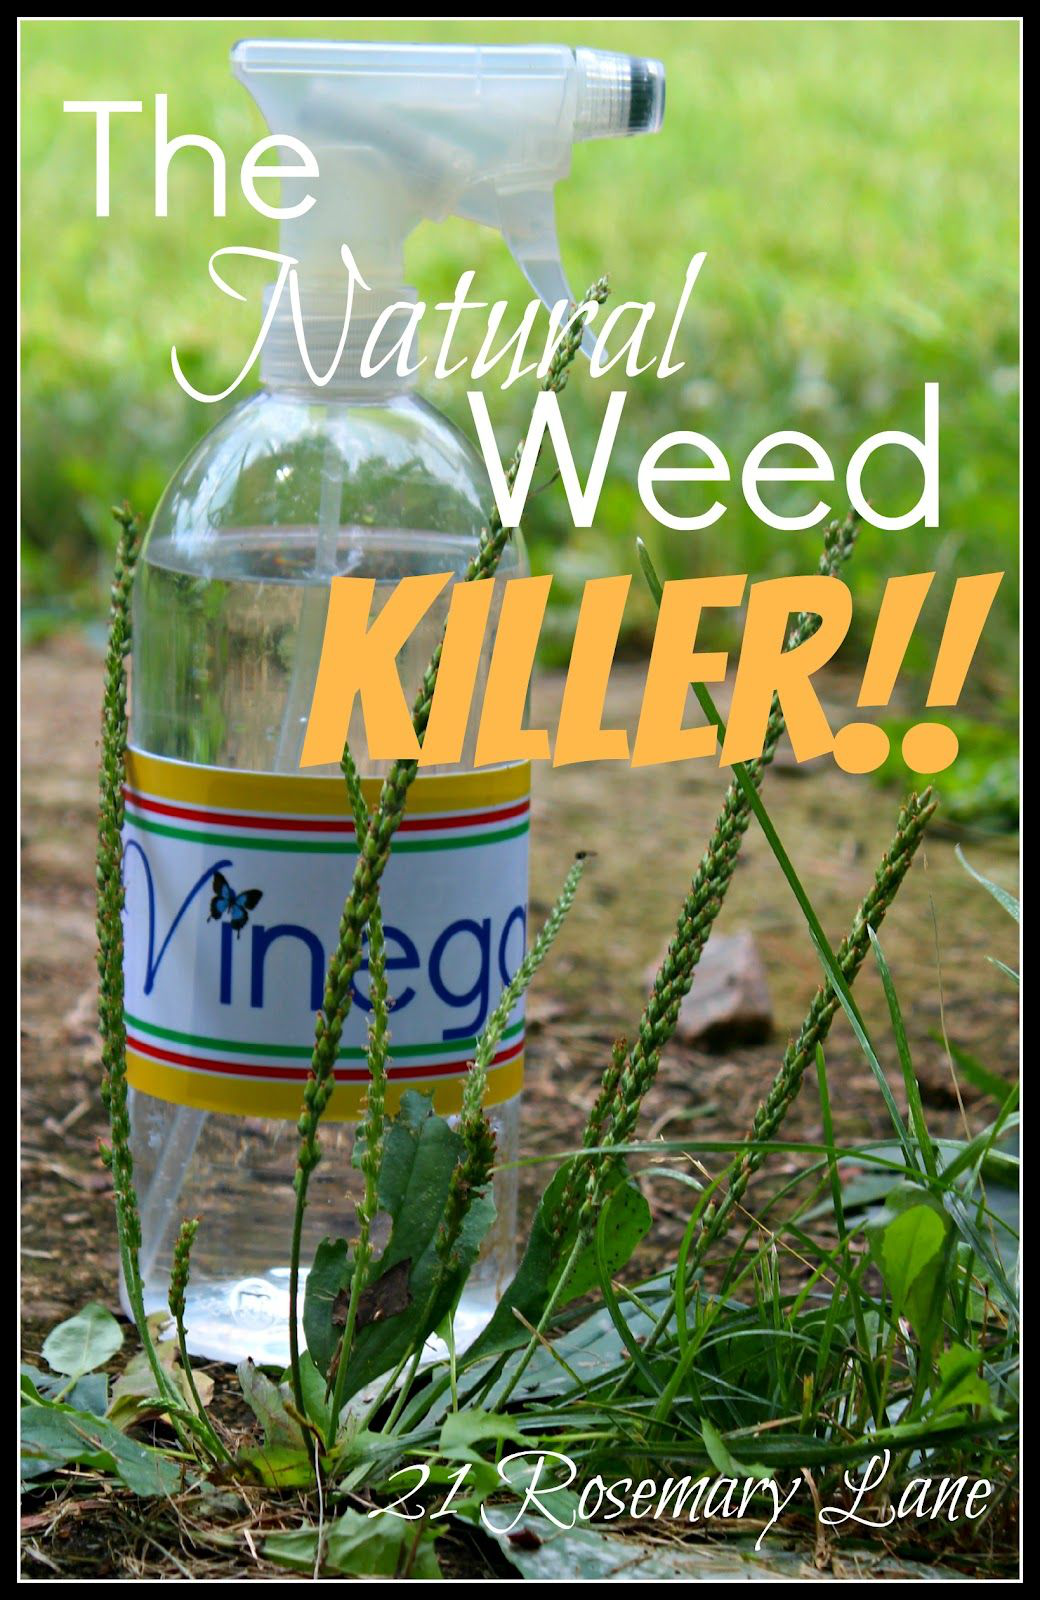 Killing weeds with vinegar plus a cute bottle lable for you